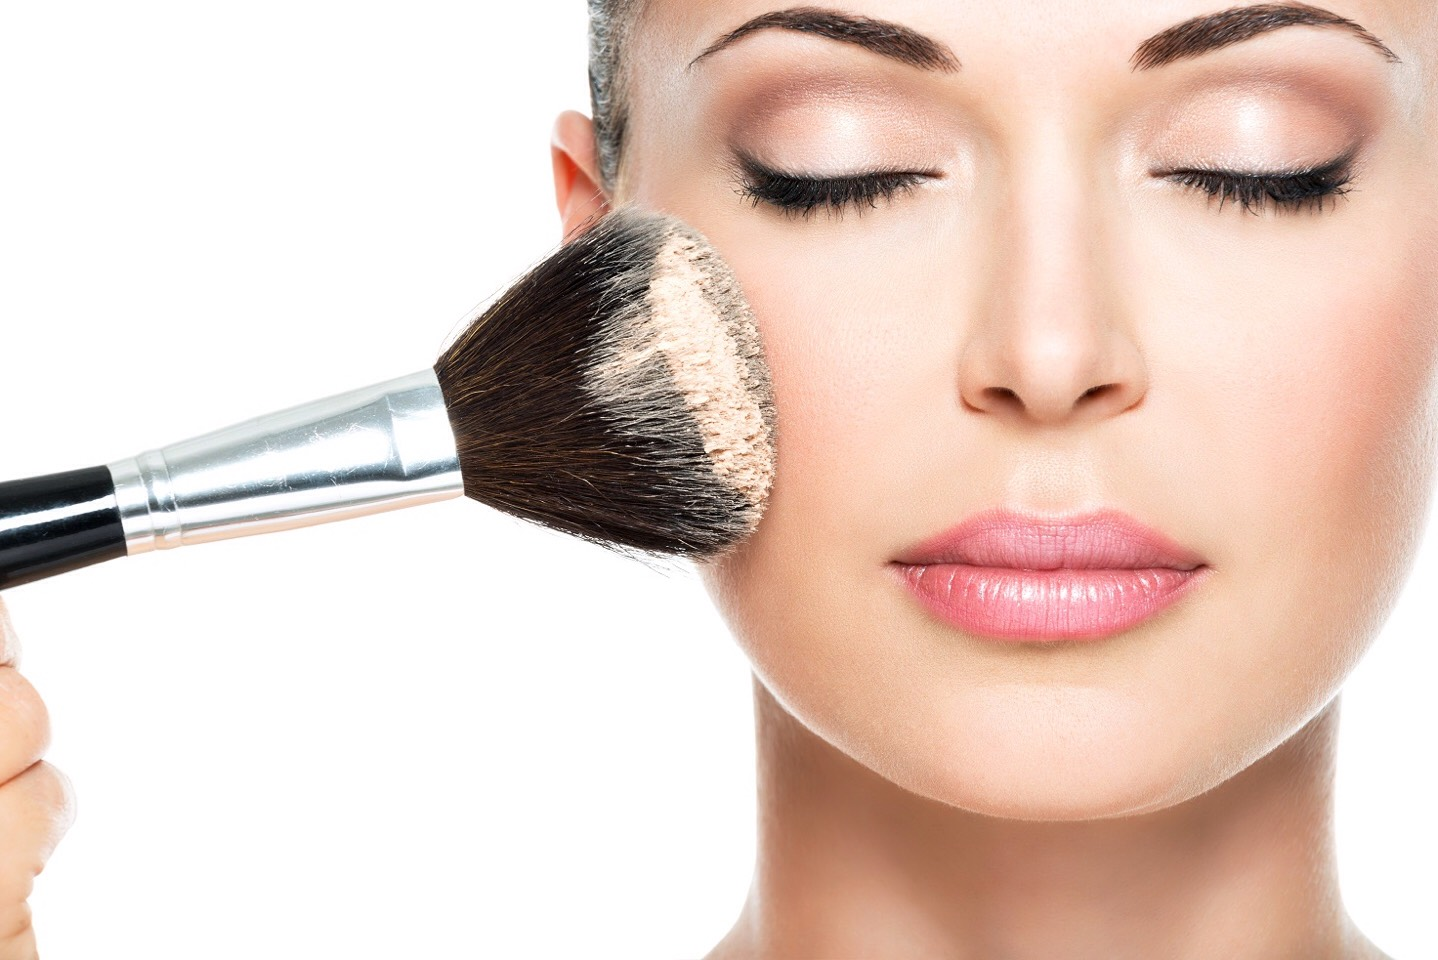 Makeup- it's easier to do concealer, powder, mascara, and Chapstick at home and then you can pack everything else and do it either on the way there or when you get there if you will have time